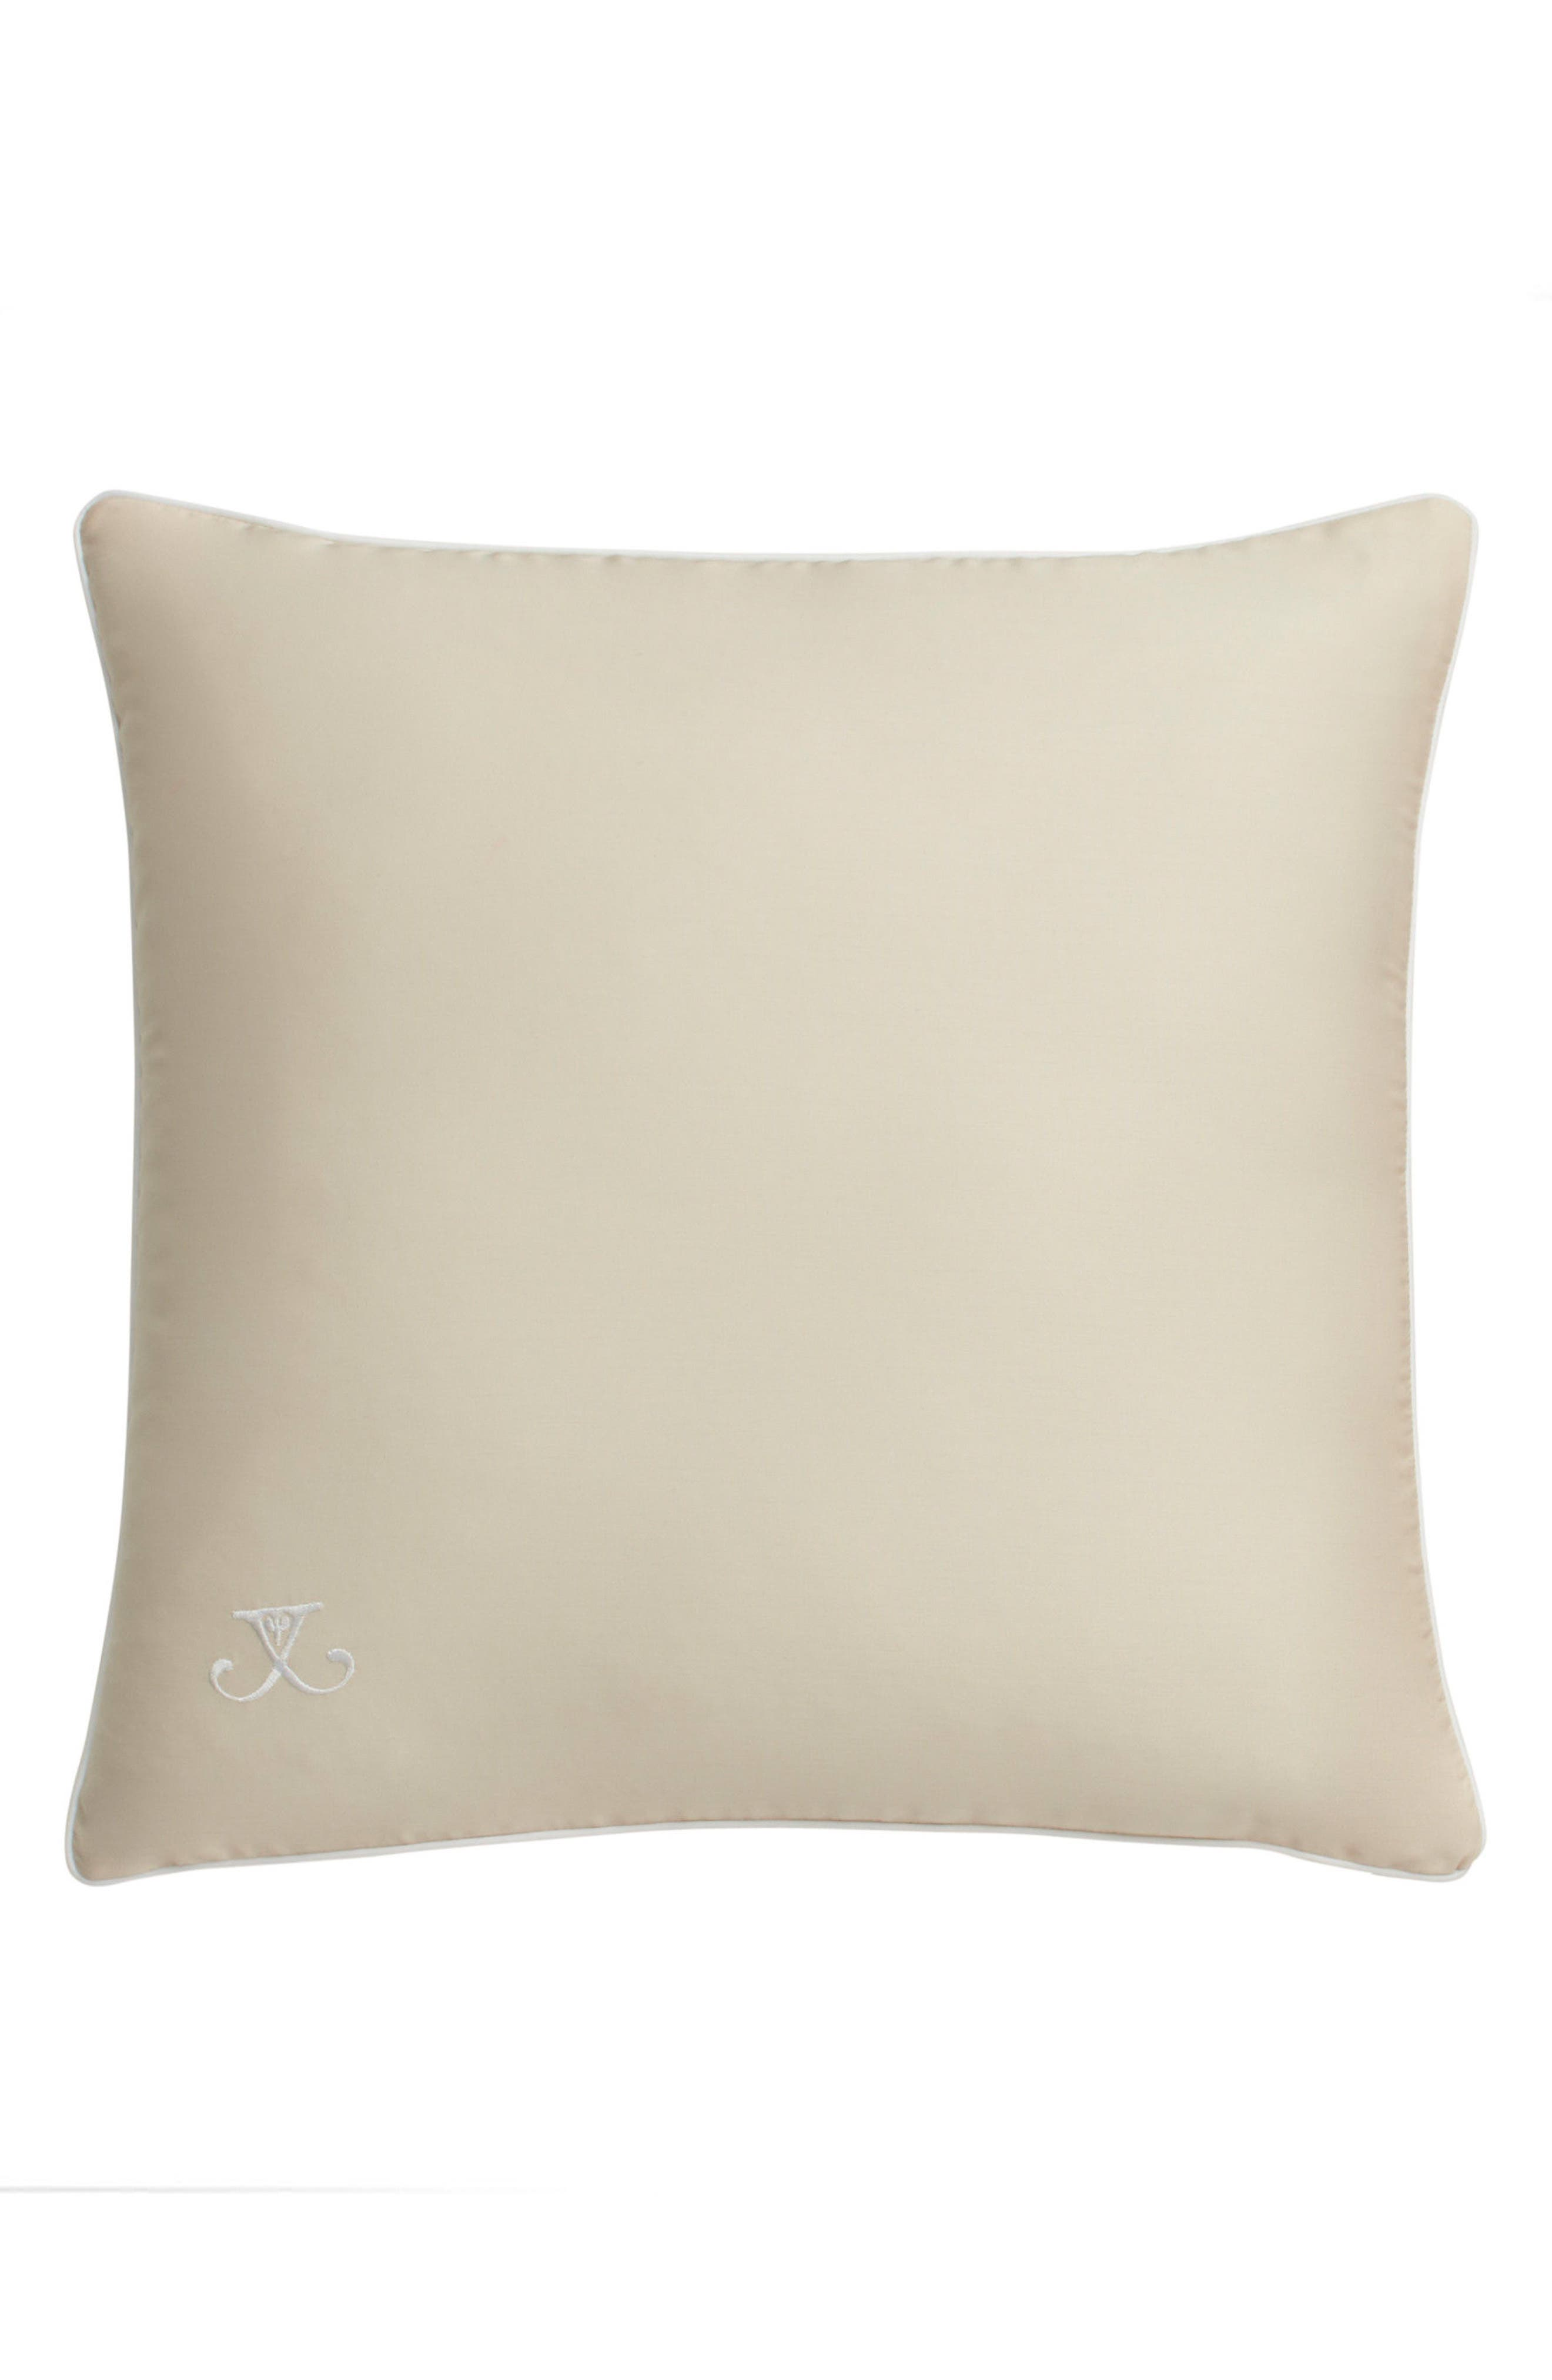 Blackpoint Hex Accent Pillow,                             Main thumbnail 1, color,                             250